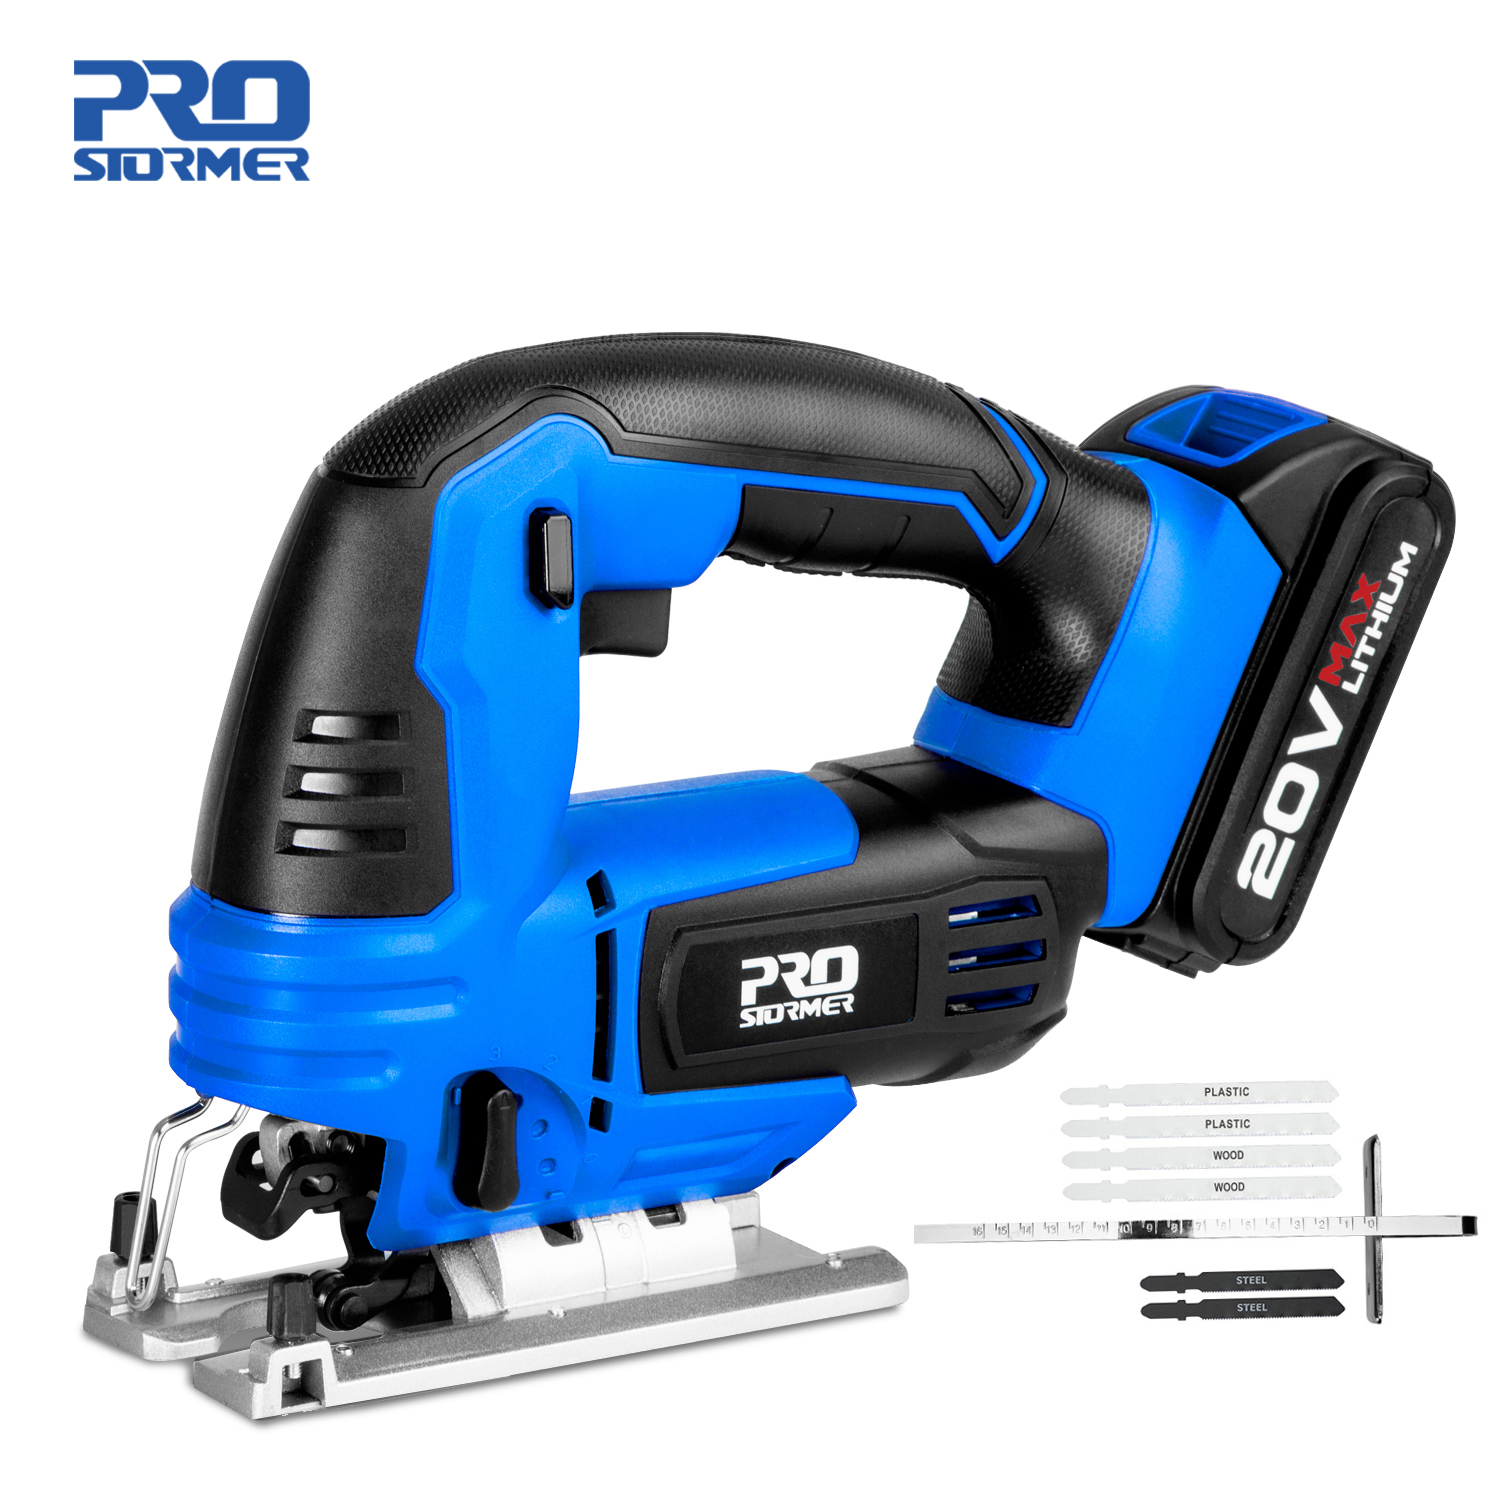 Jig Saw 20V Cordless Jigsaw Quick Blade Change Electric Saw LED Light Guide With 6 Pcs Blades Woodworking Power By PROSTORMER